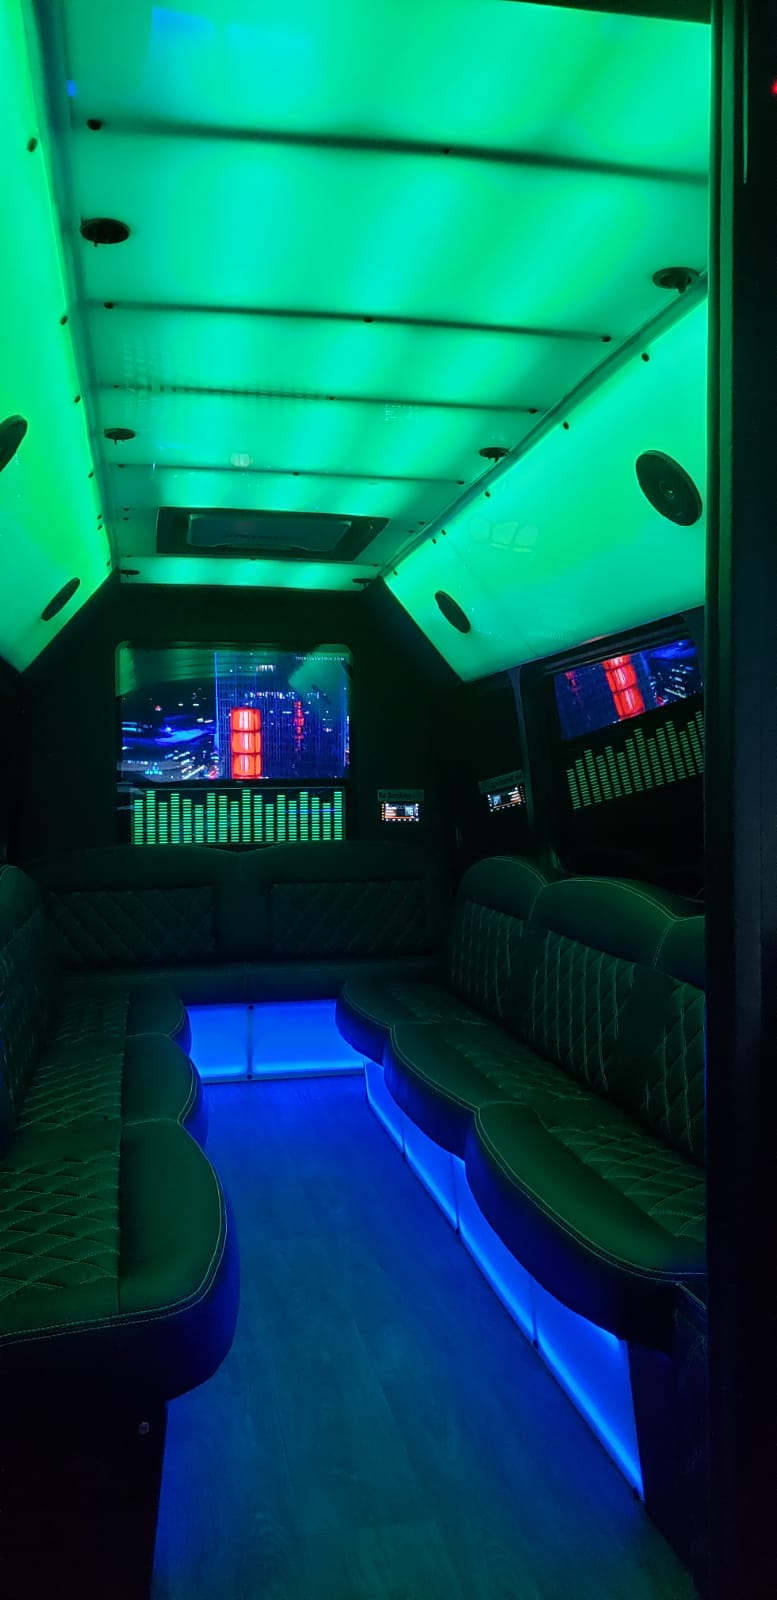 10-14 PASSENGERS PARTY BUS - Inside Limo